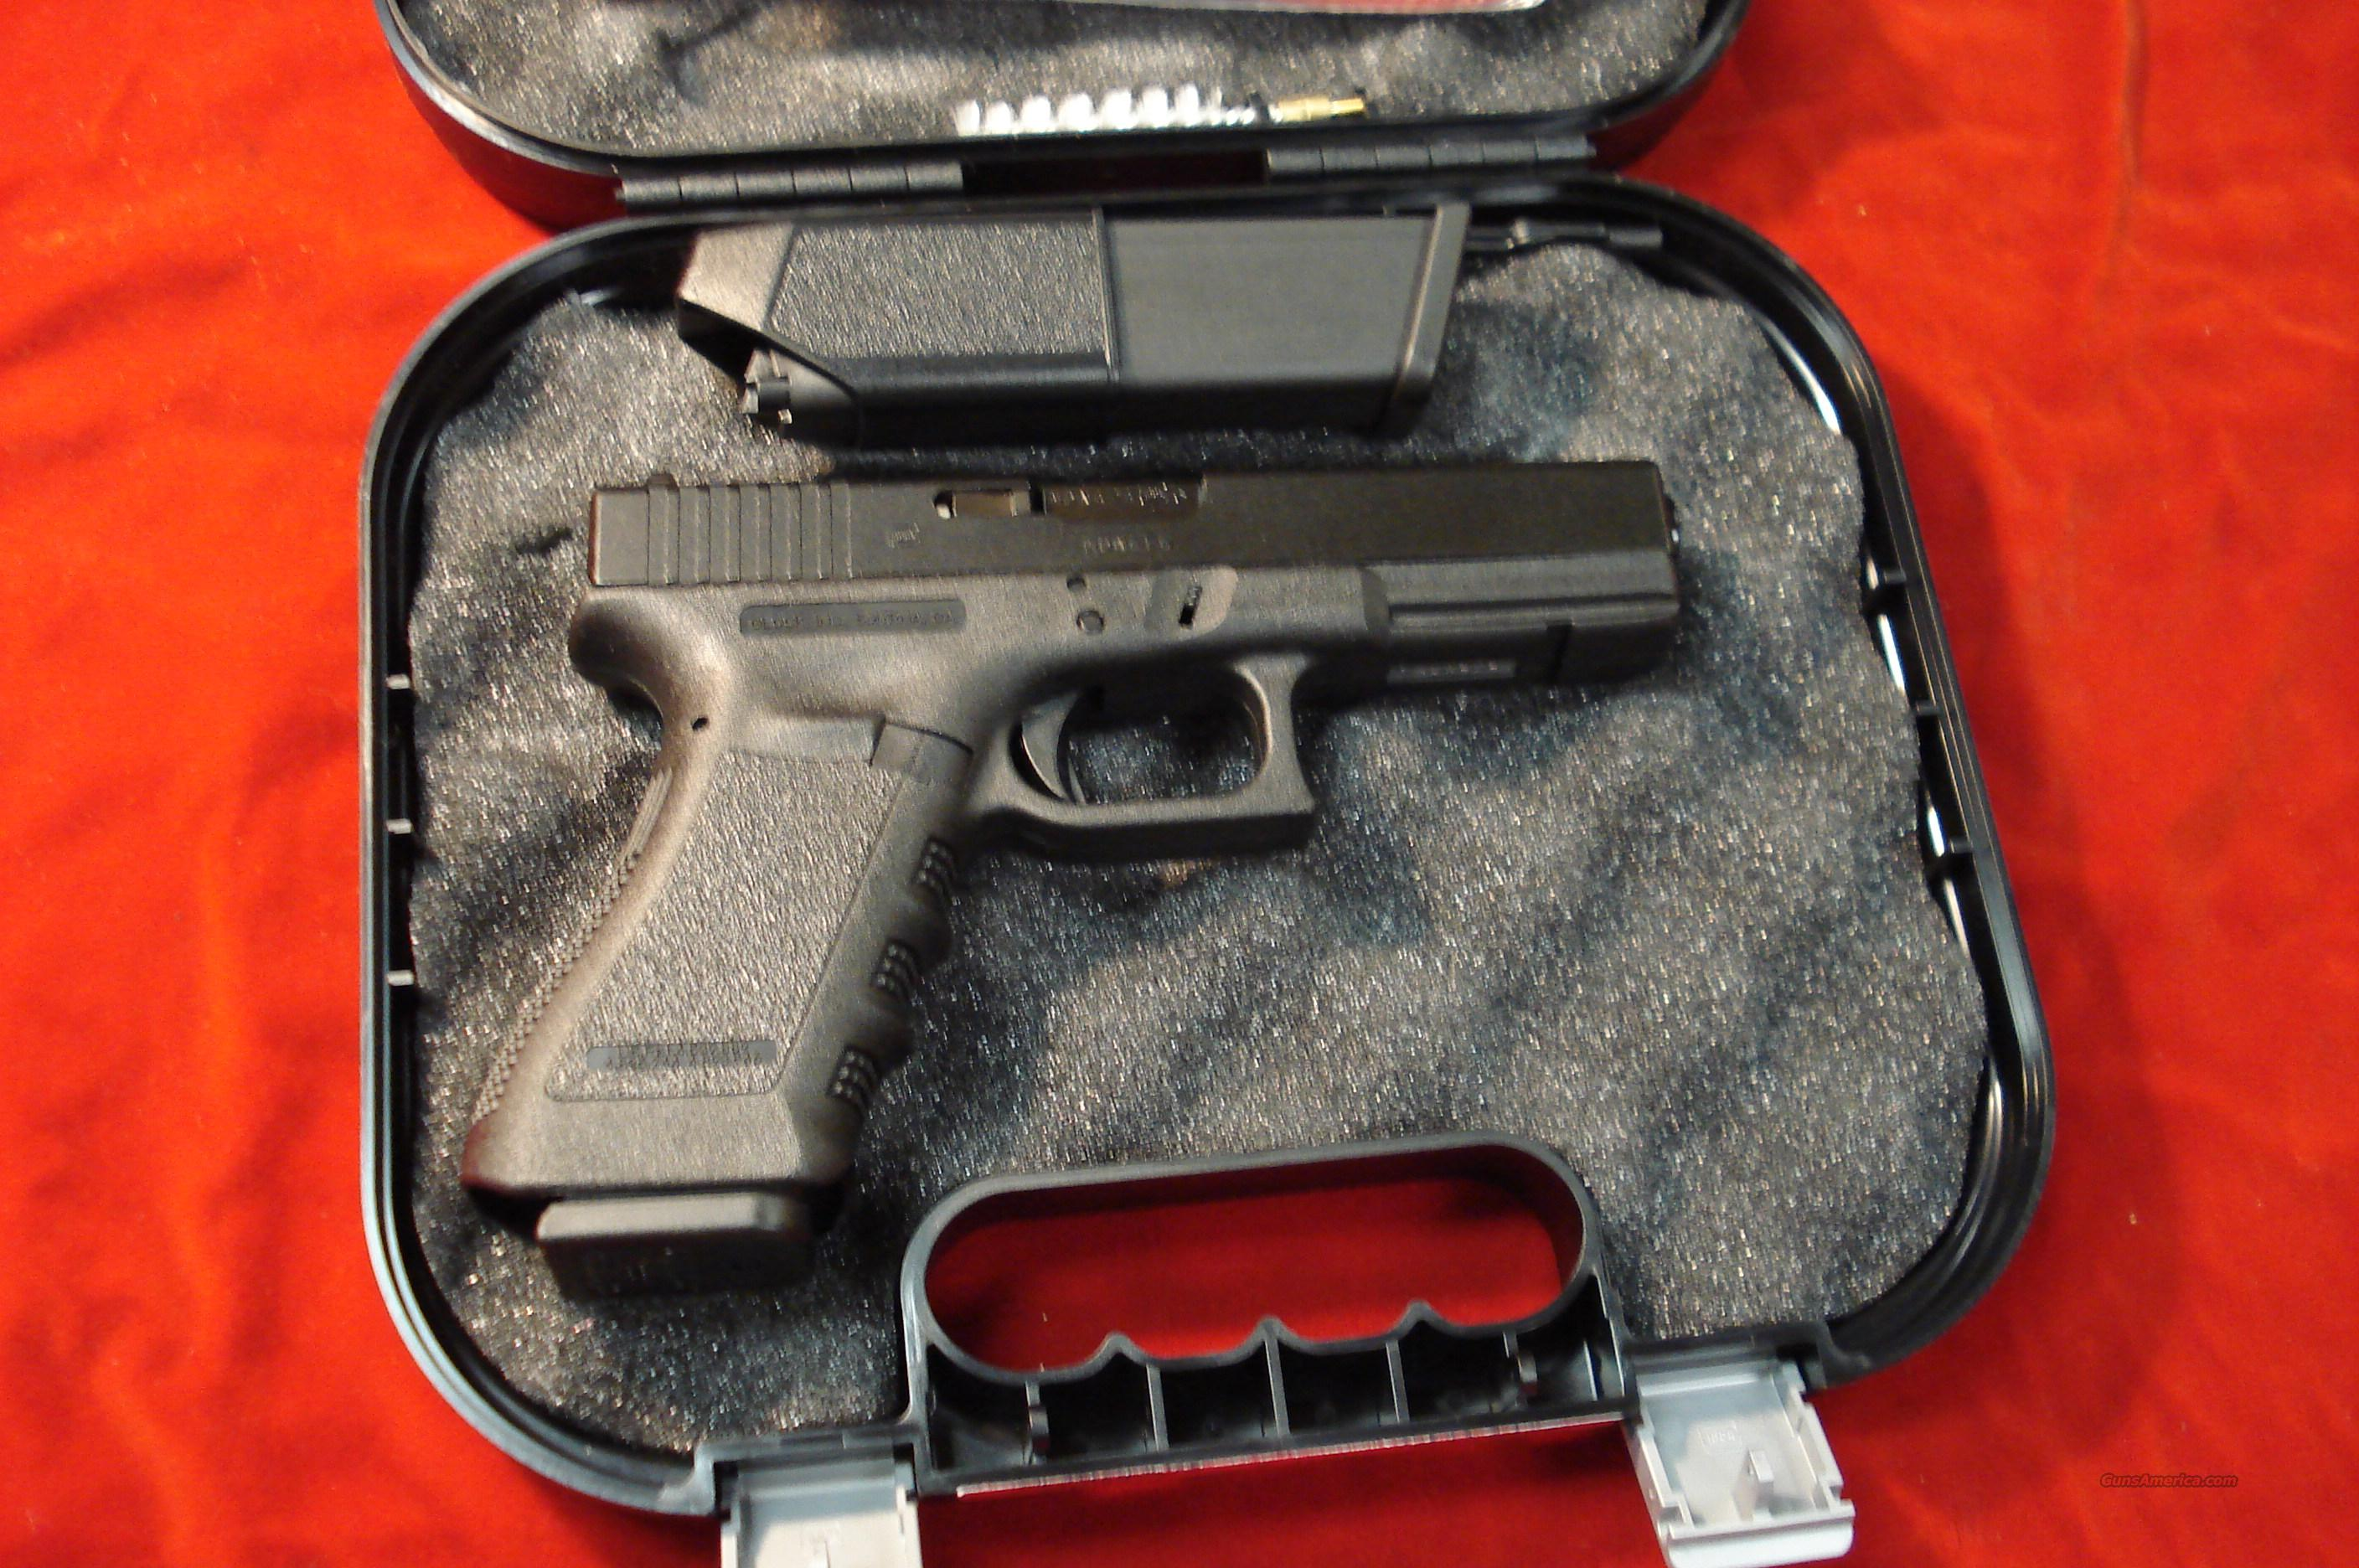 GLOCK MODEL 17  9MM  NEW     Guns > Pistols > Glock Pistols > 17